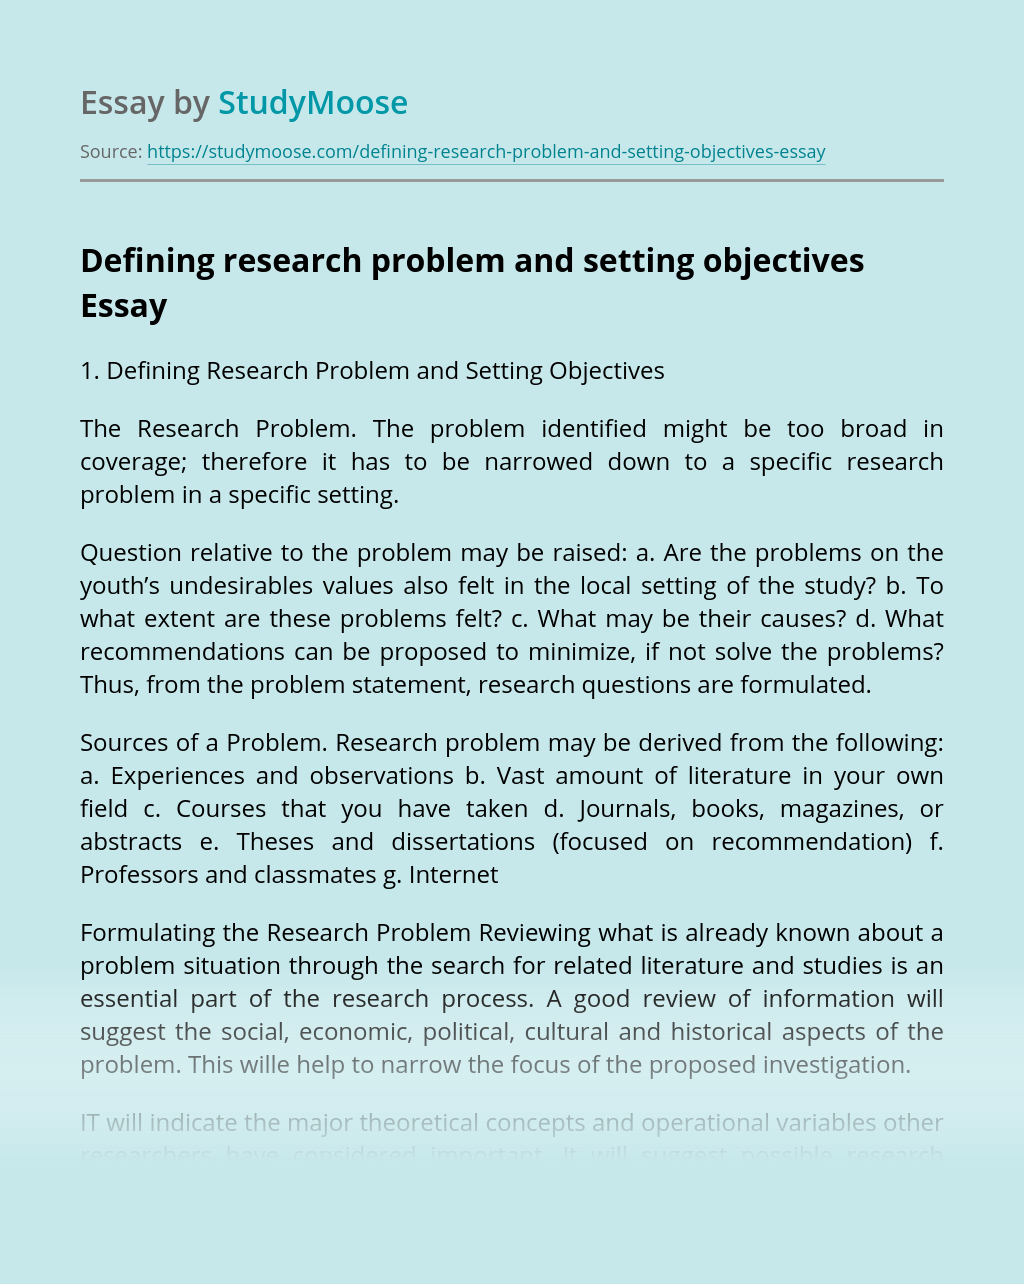 Defining research problem and setting objectives